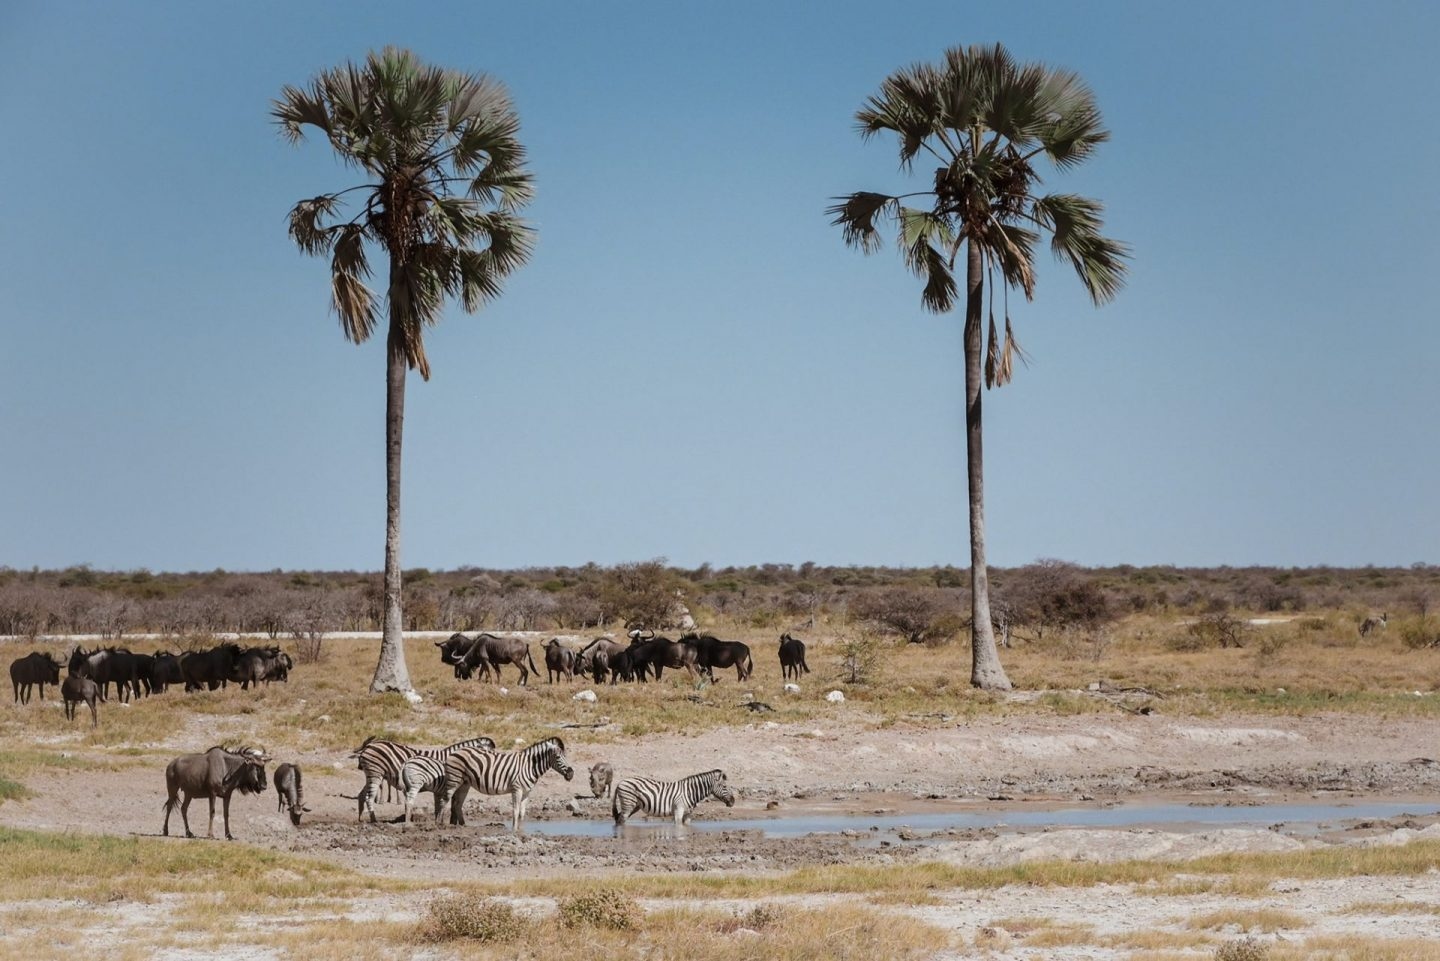 Etosha National Park self drive safari in Namibia